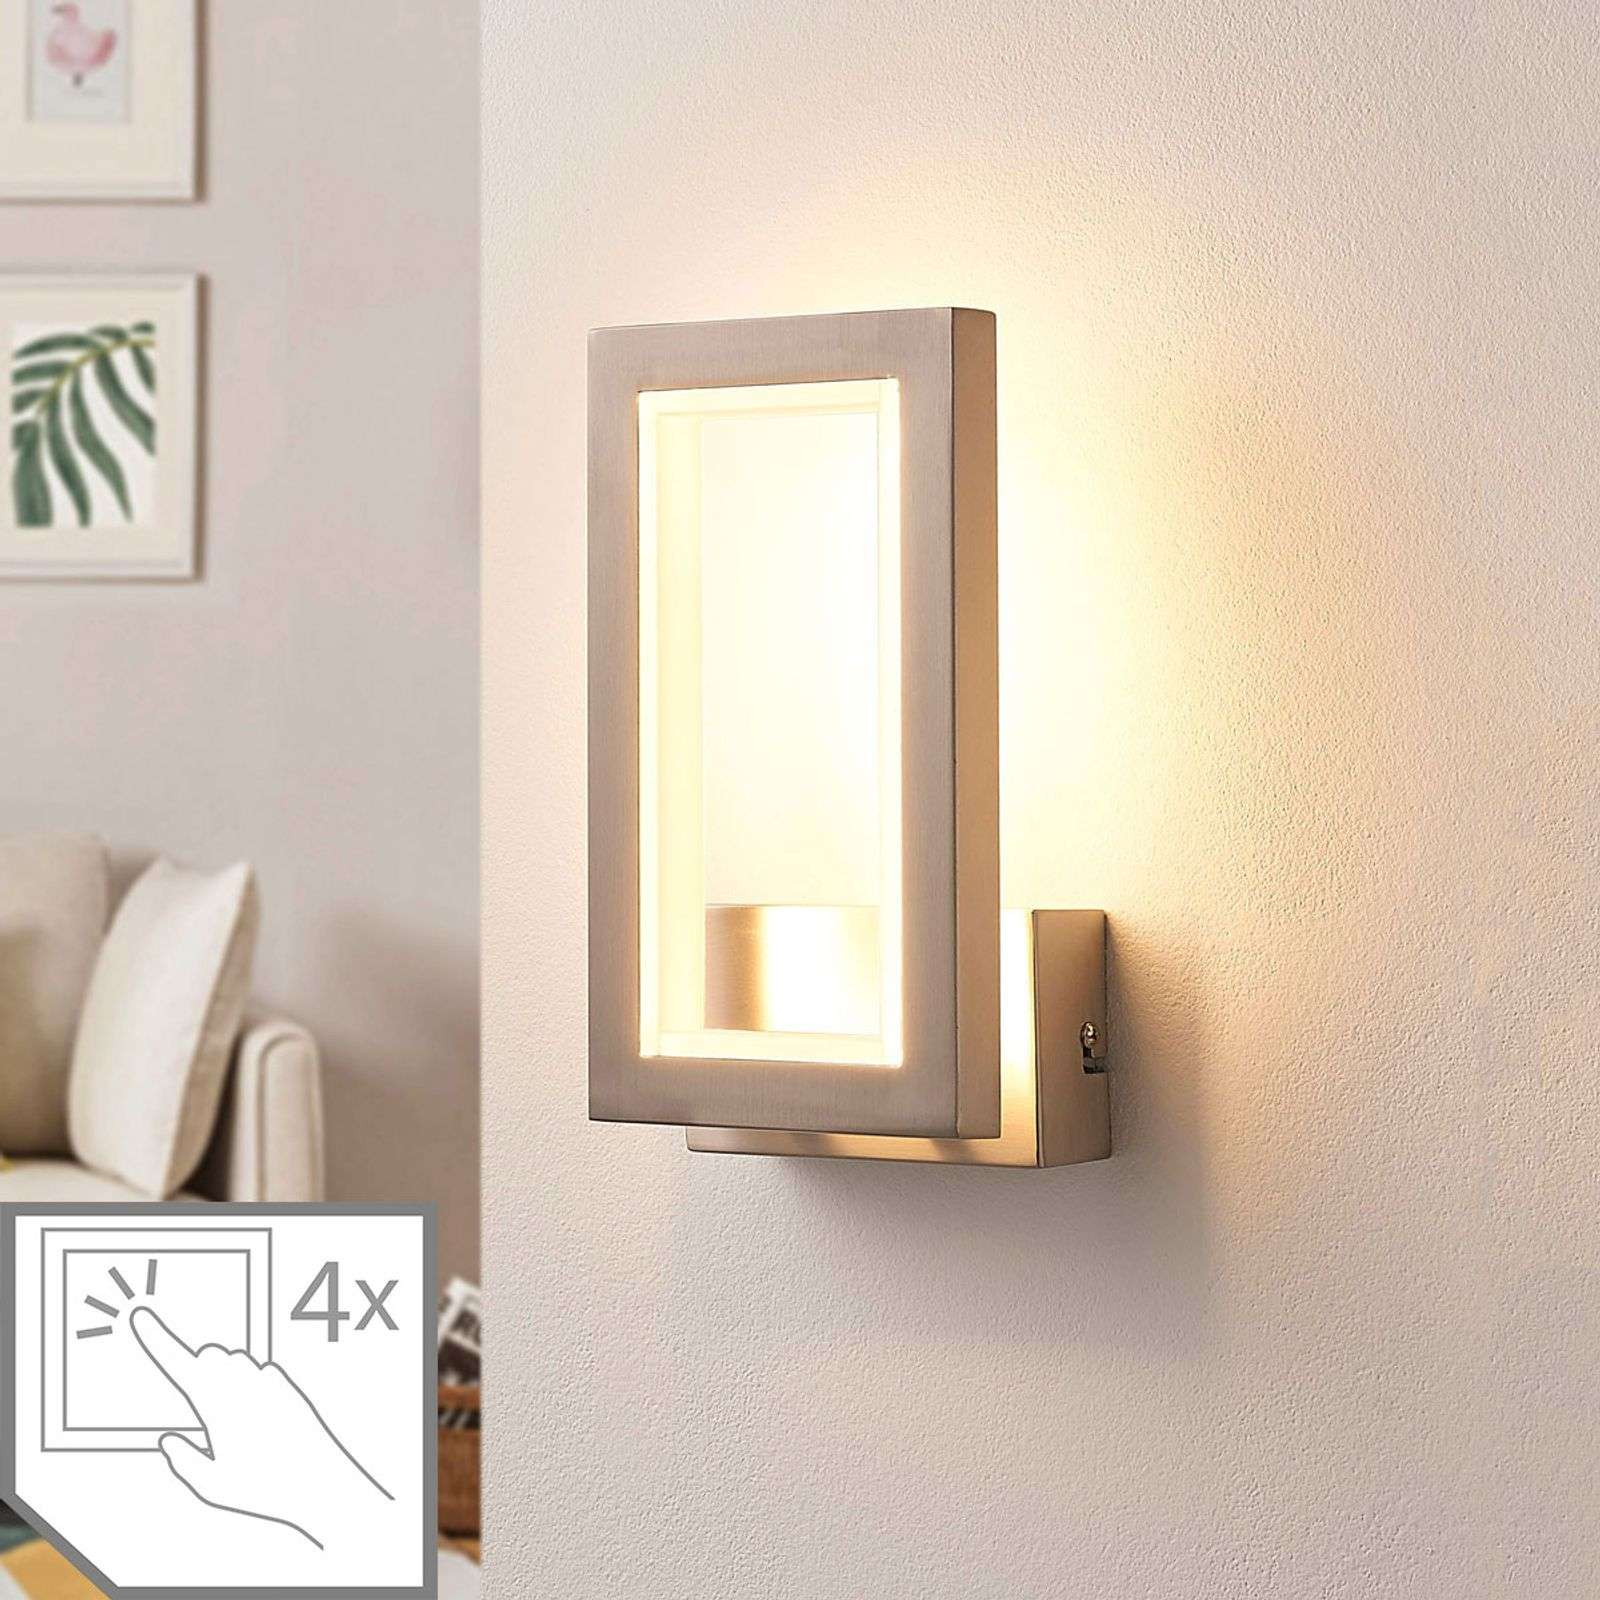 Applique murale LED carrée Heriba, nickel mat